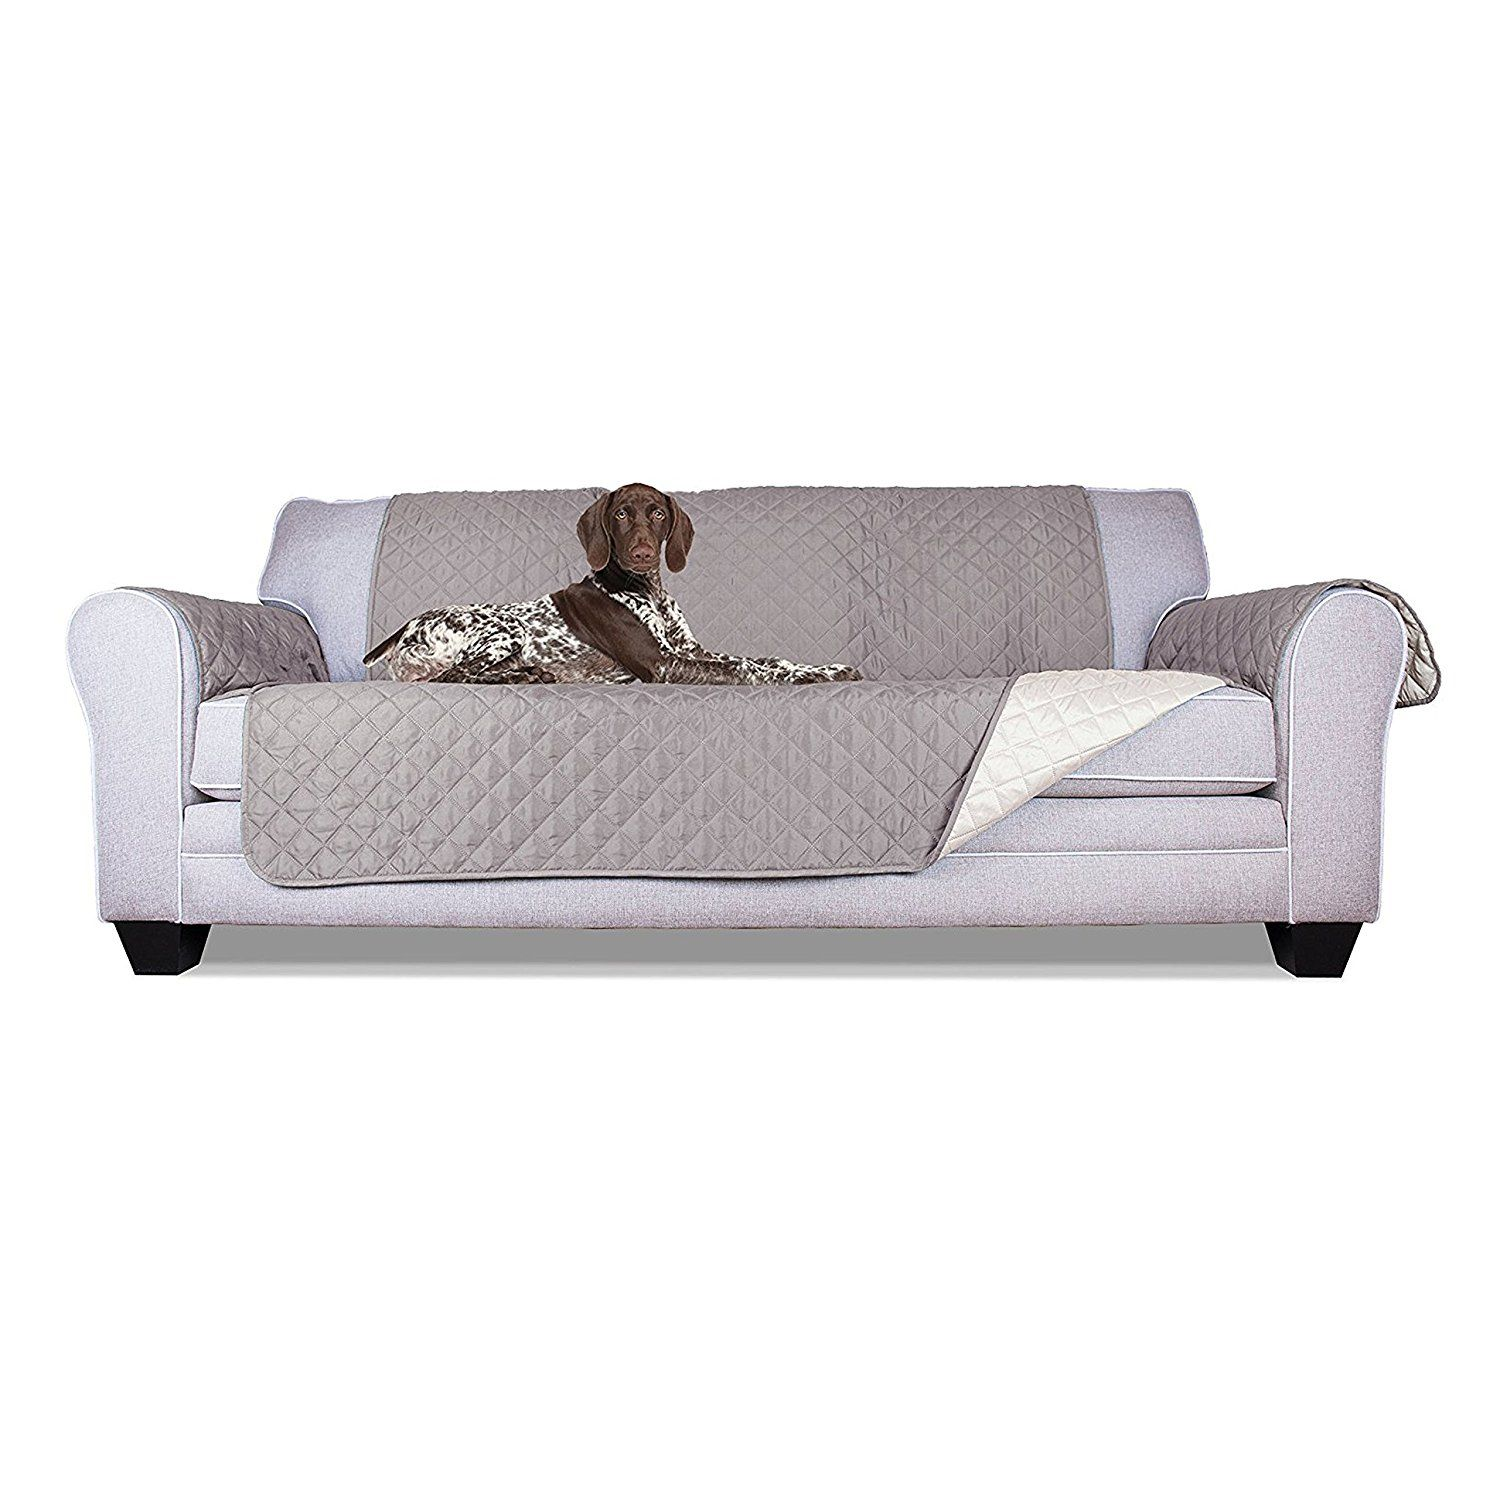 ALEKO PSC03G 110 x 71 Inches Pet Sofa Slipcover Spill Scratch Pet